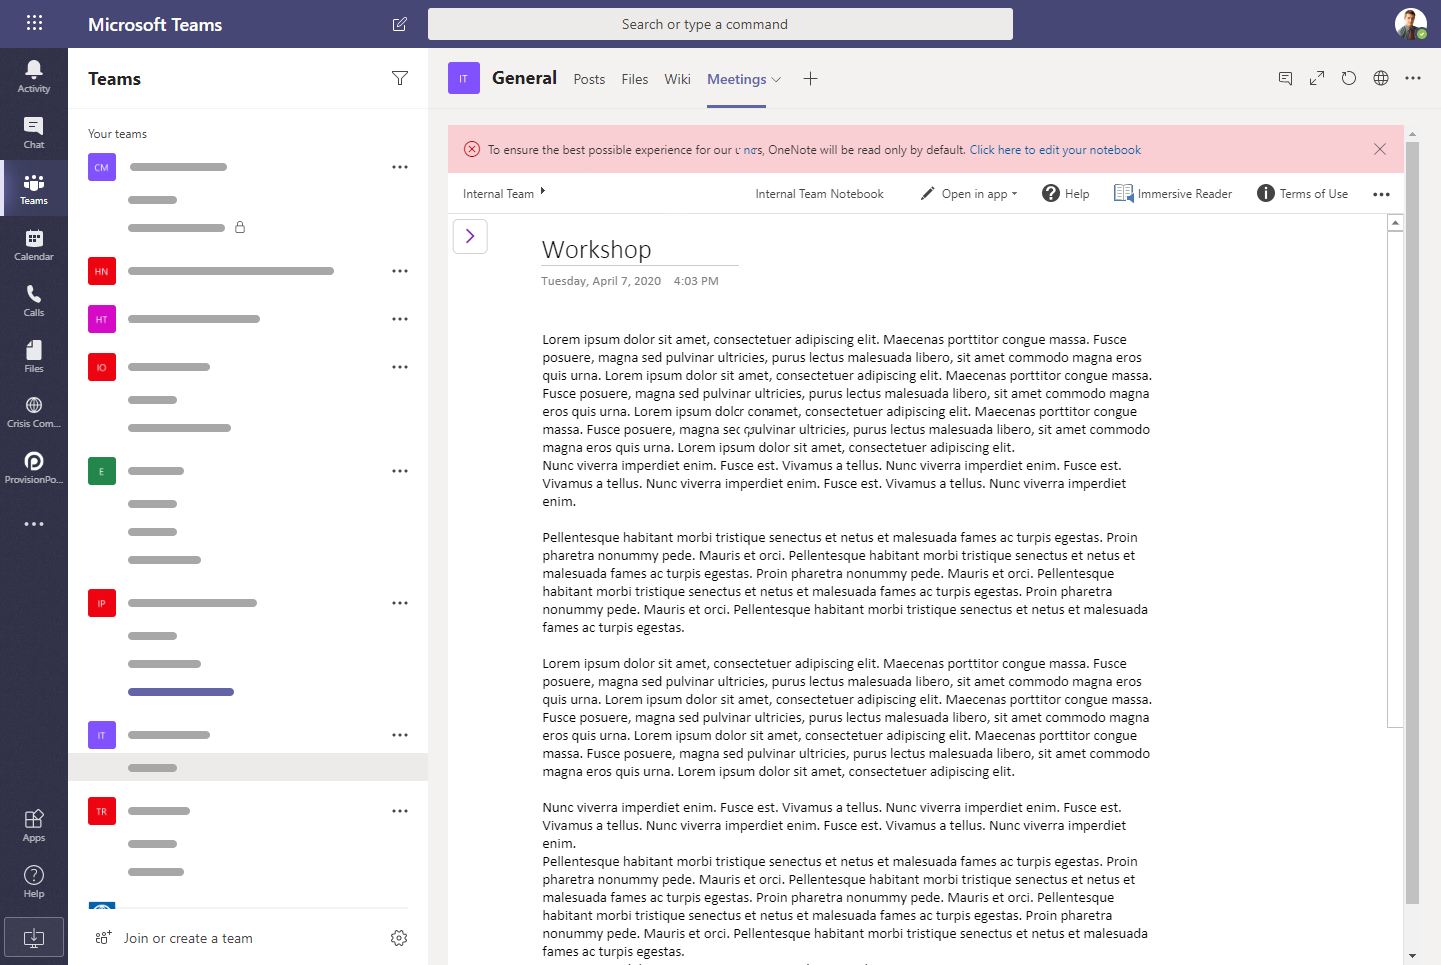 OneNote is read-only in Teams by default.